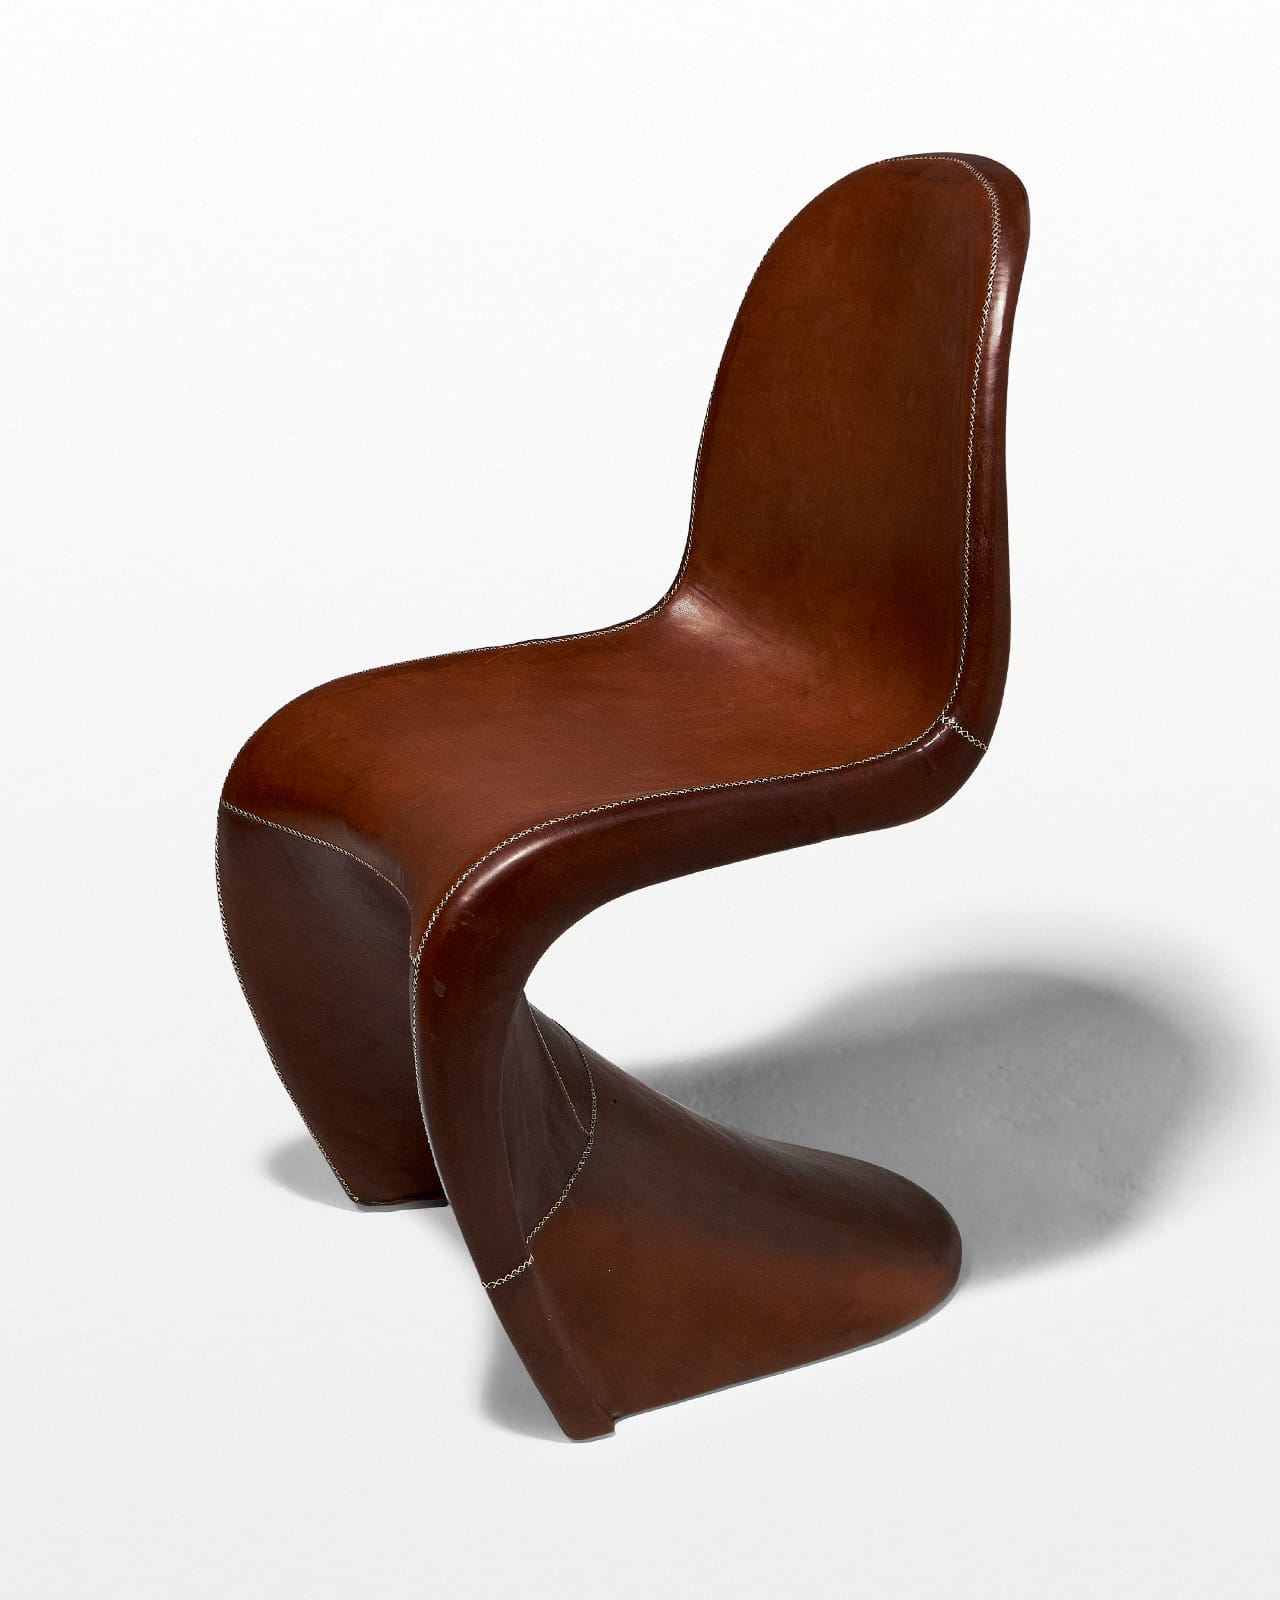 CH488 Yogi Leather Scoop Chair